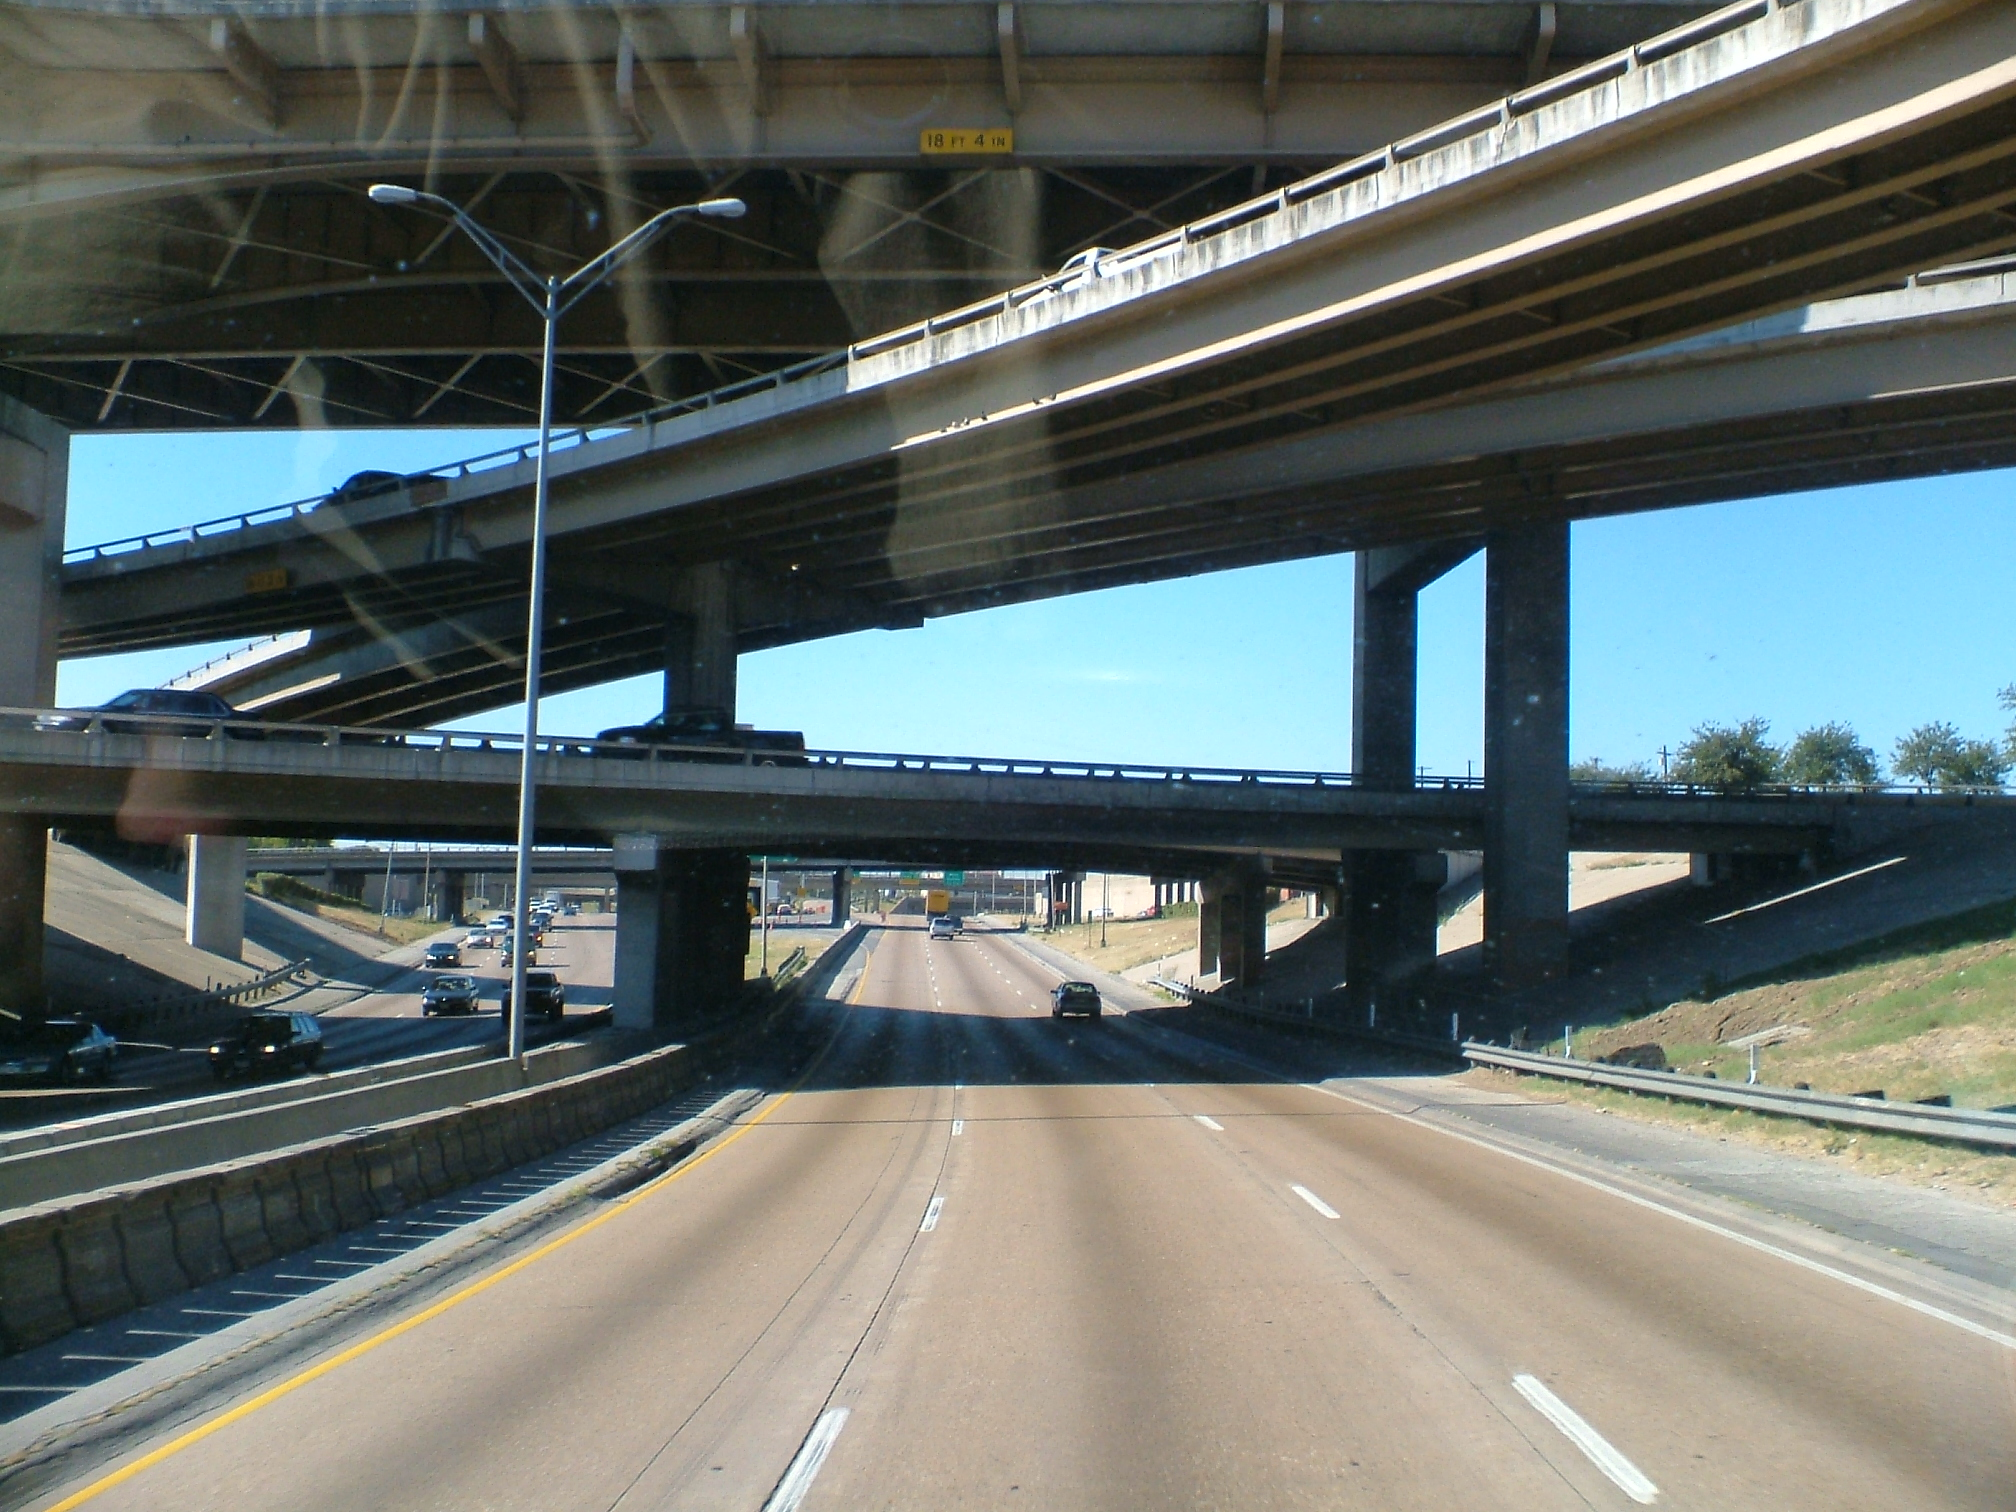 Typical concrete scenery of the North American highways